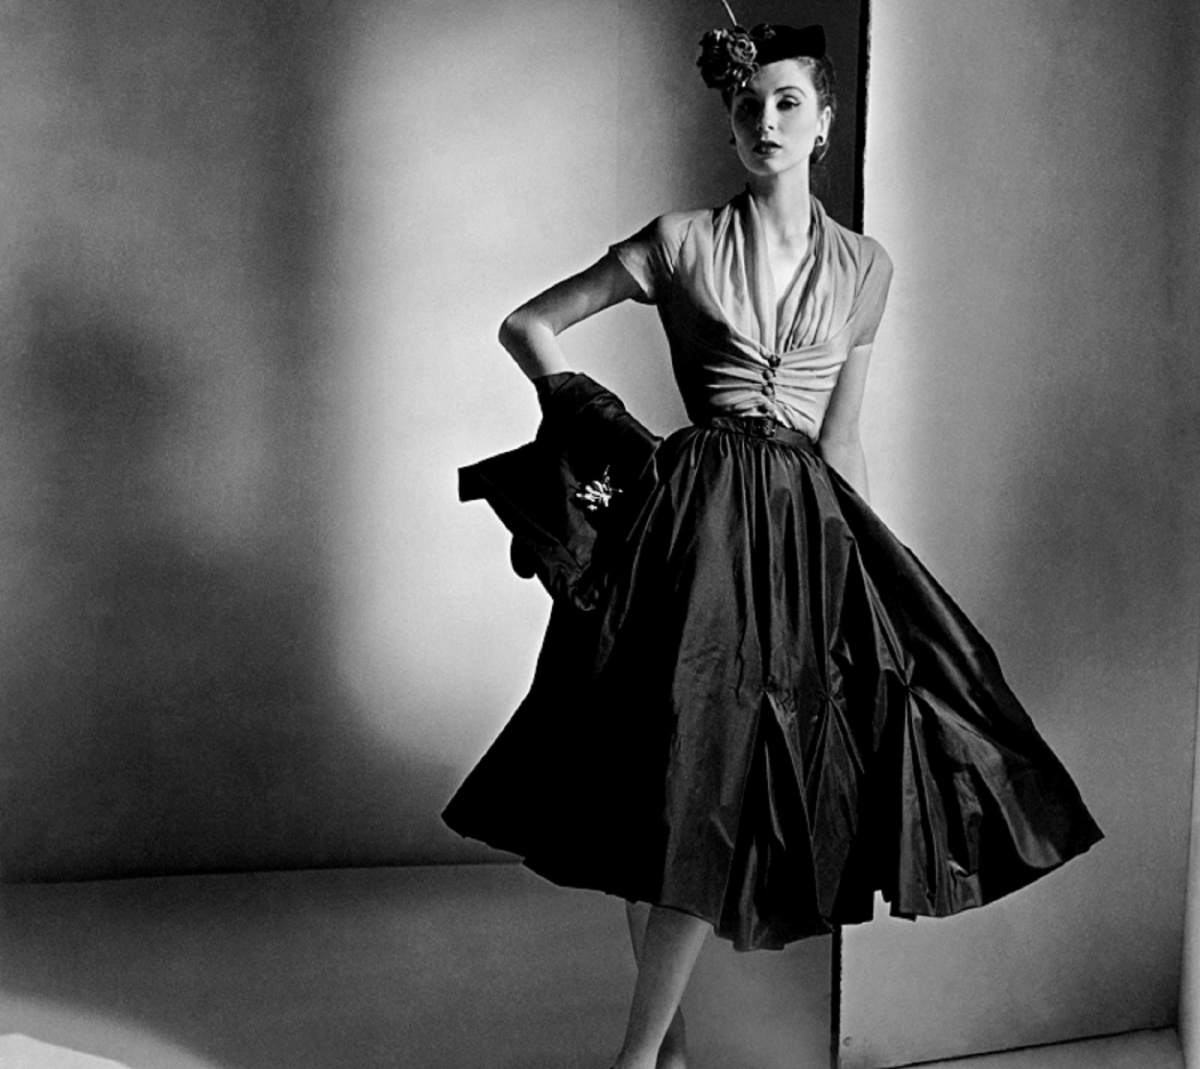 FABULOUS 1950s IN FILM FASHION – Silver Screen Modes by